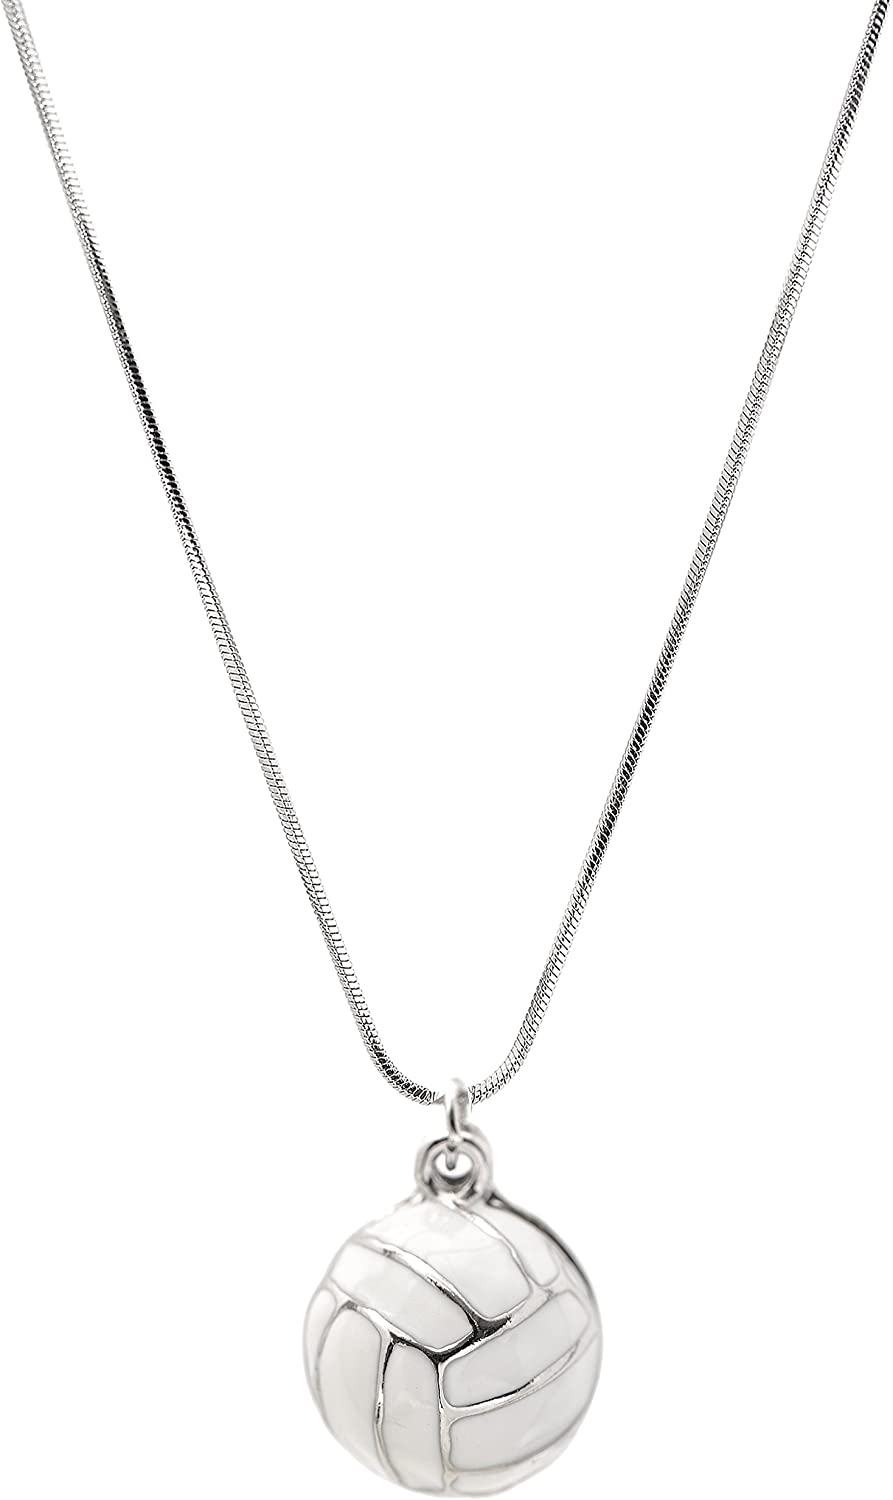 chelseachicNYC Perfect Striking White Volleyball Necklace